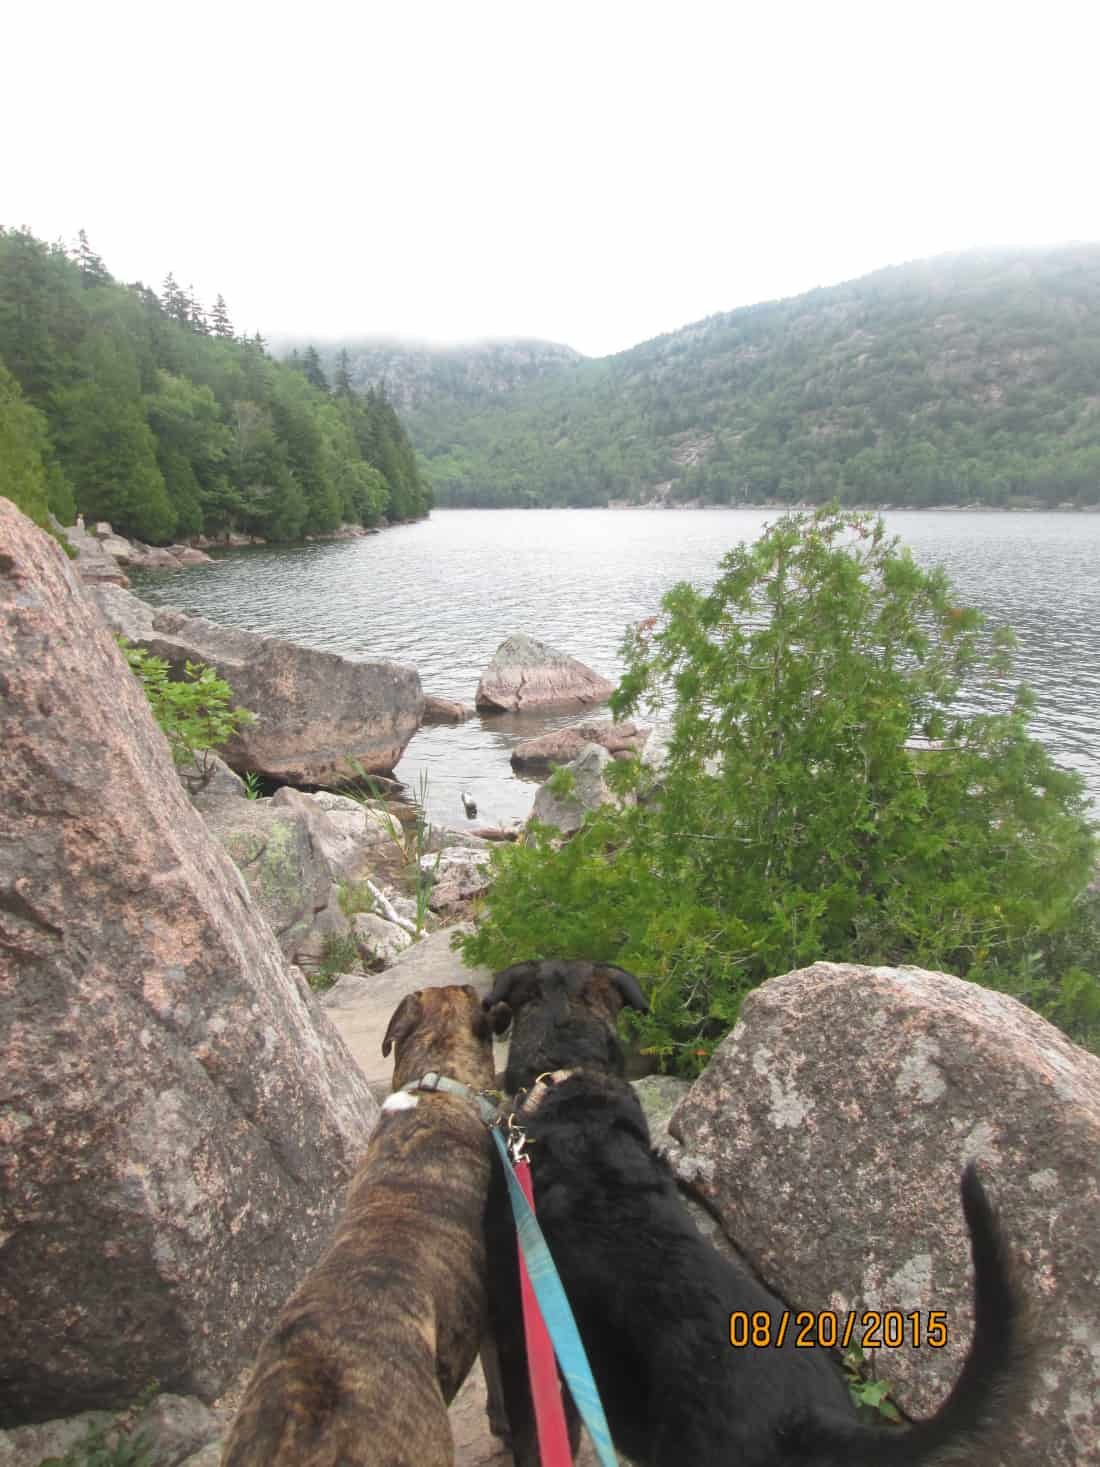 Dogs in New England at Jordan Pond in pet friendly Acadia National Park, ME